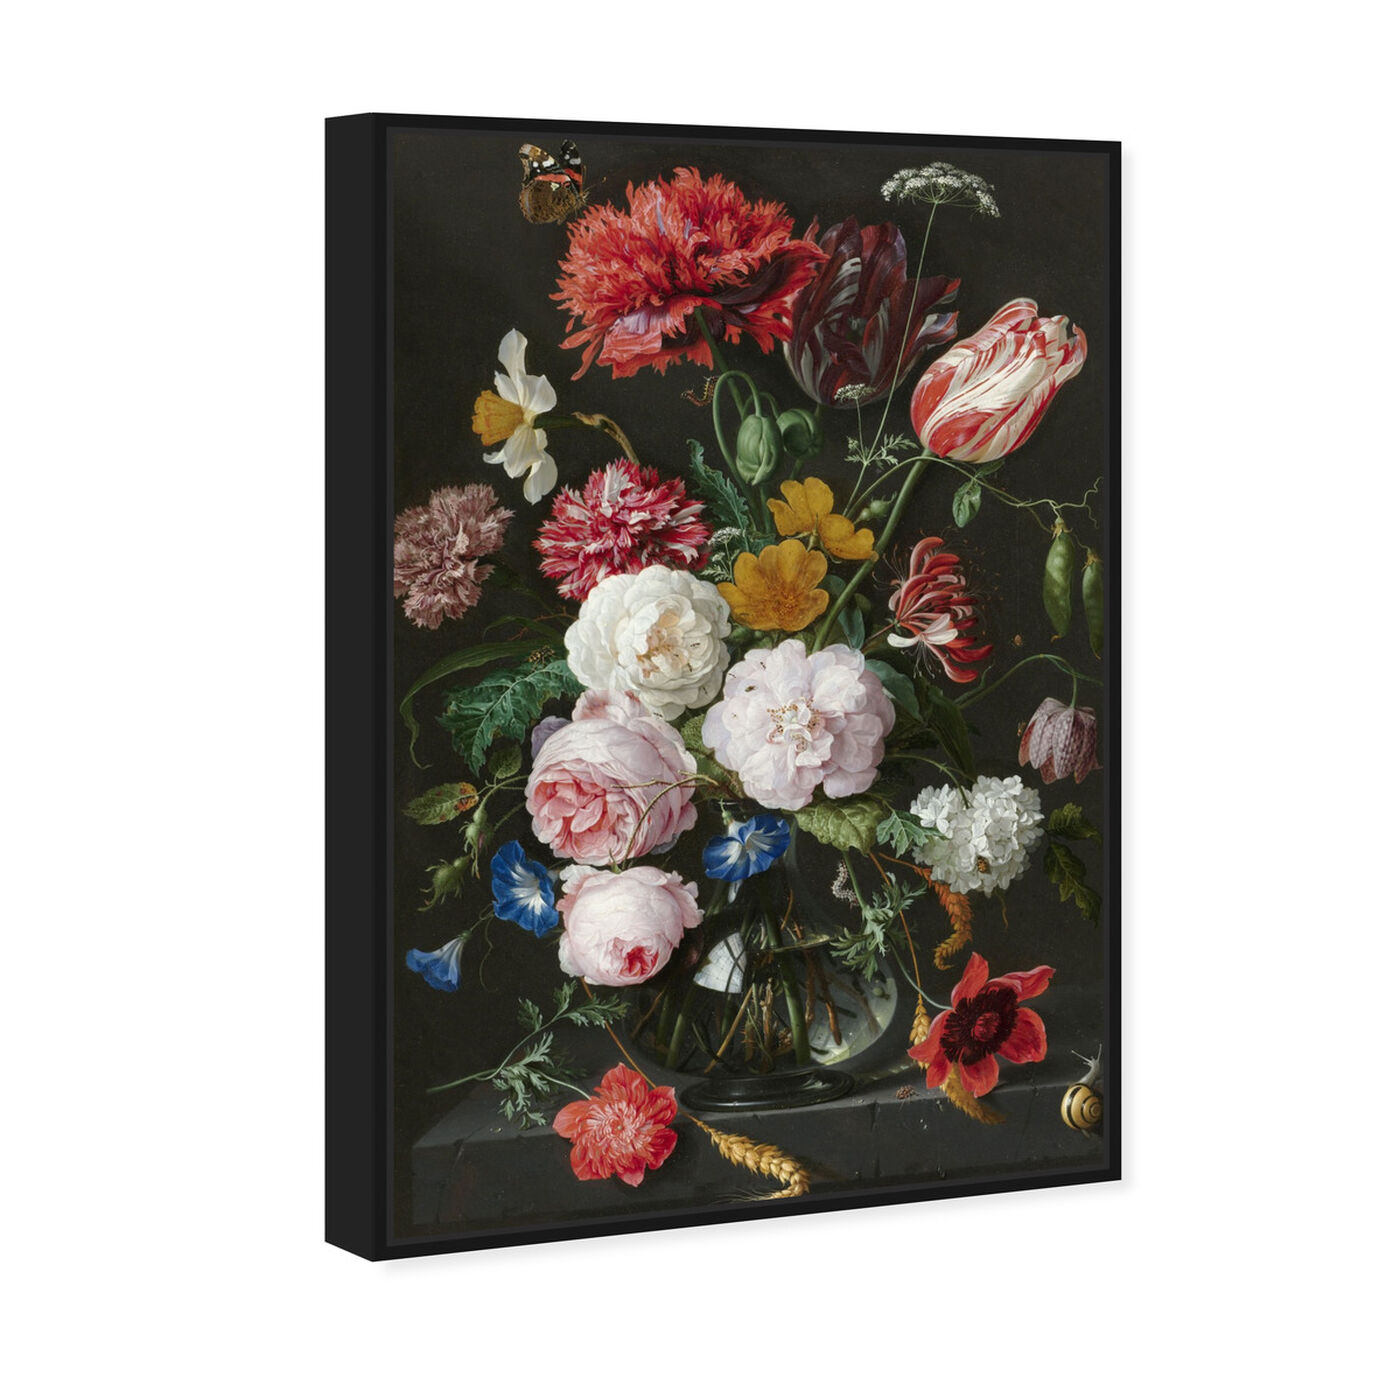 Angled view of Flower Arrangement XIV - The Art Cabinet featuring floral and botanical and florals art.